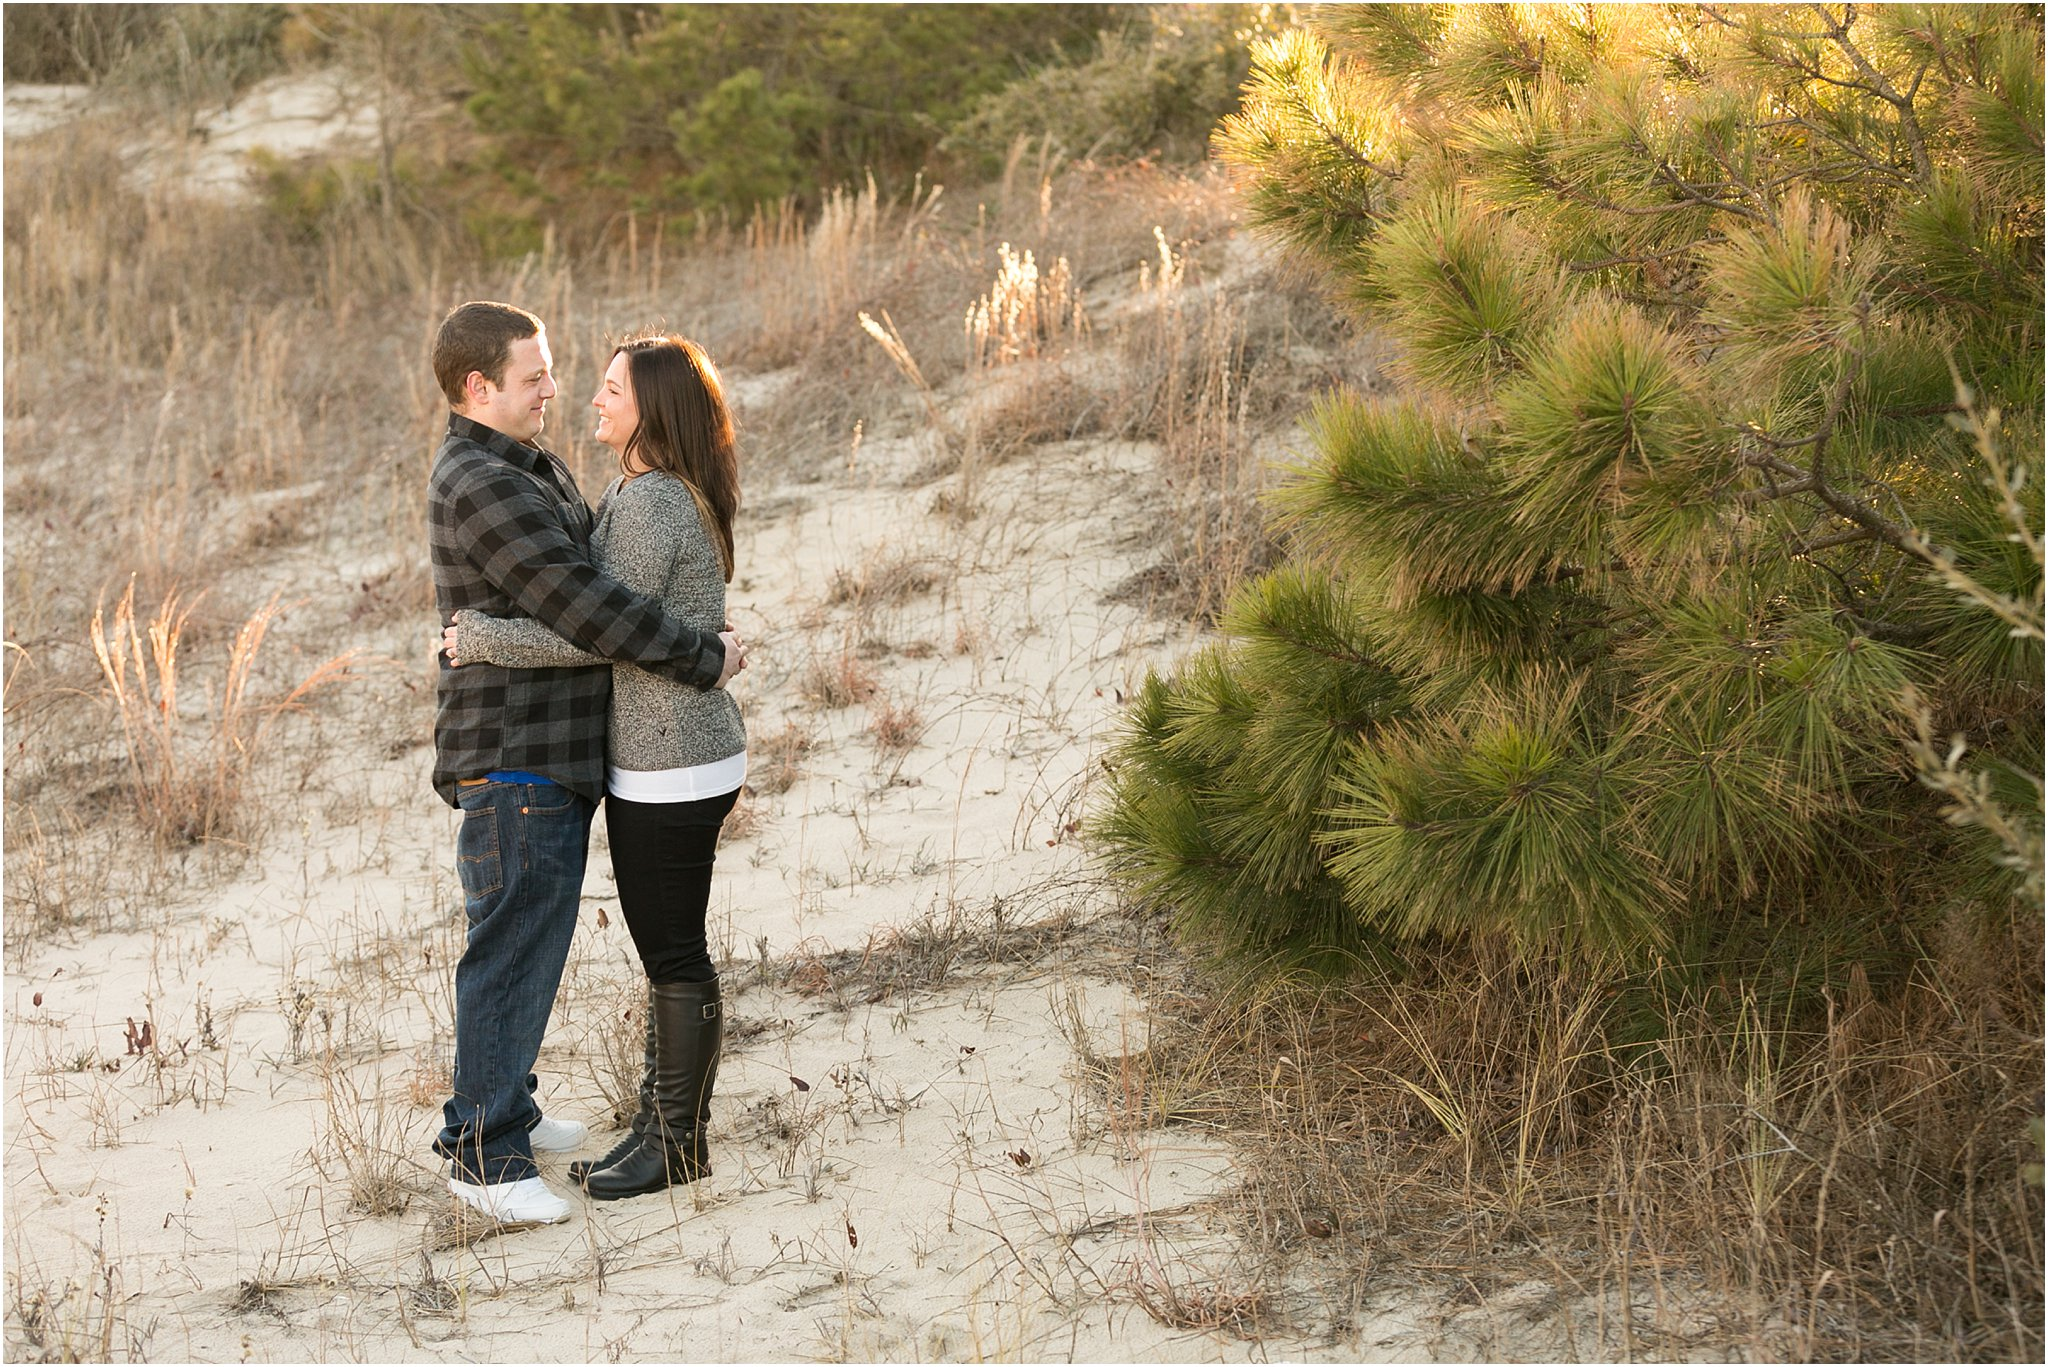 jessica_ryan_photography_winter_engagements_virginia_beach_oceanfront_virginia_0748